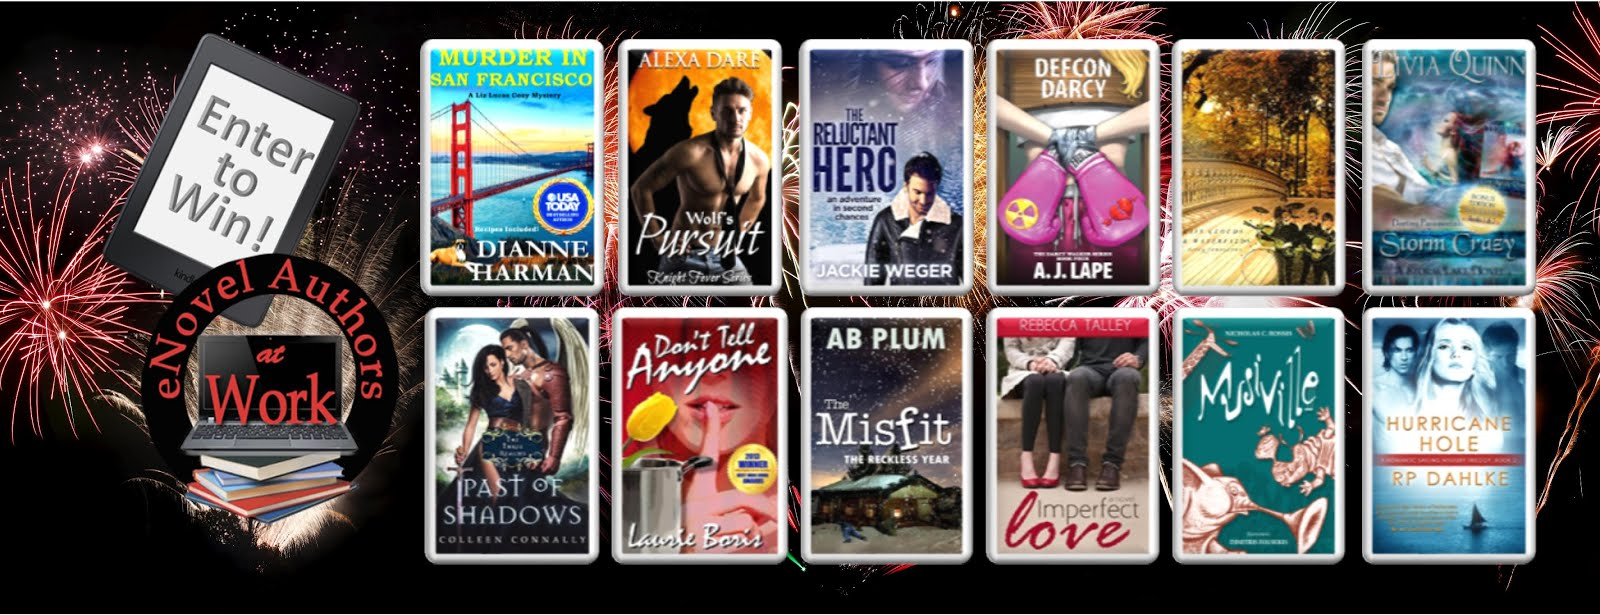 Kindle PaperWhite Giveaway and Much, Much More